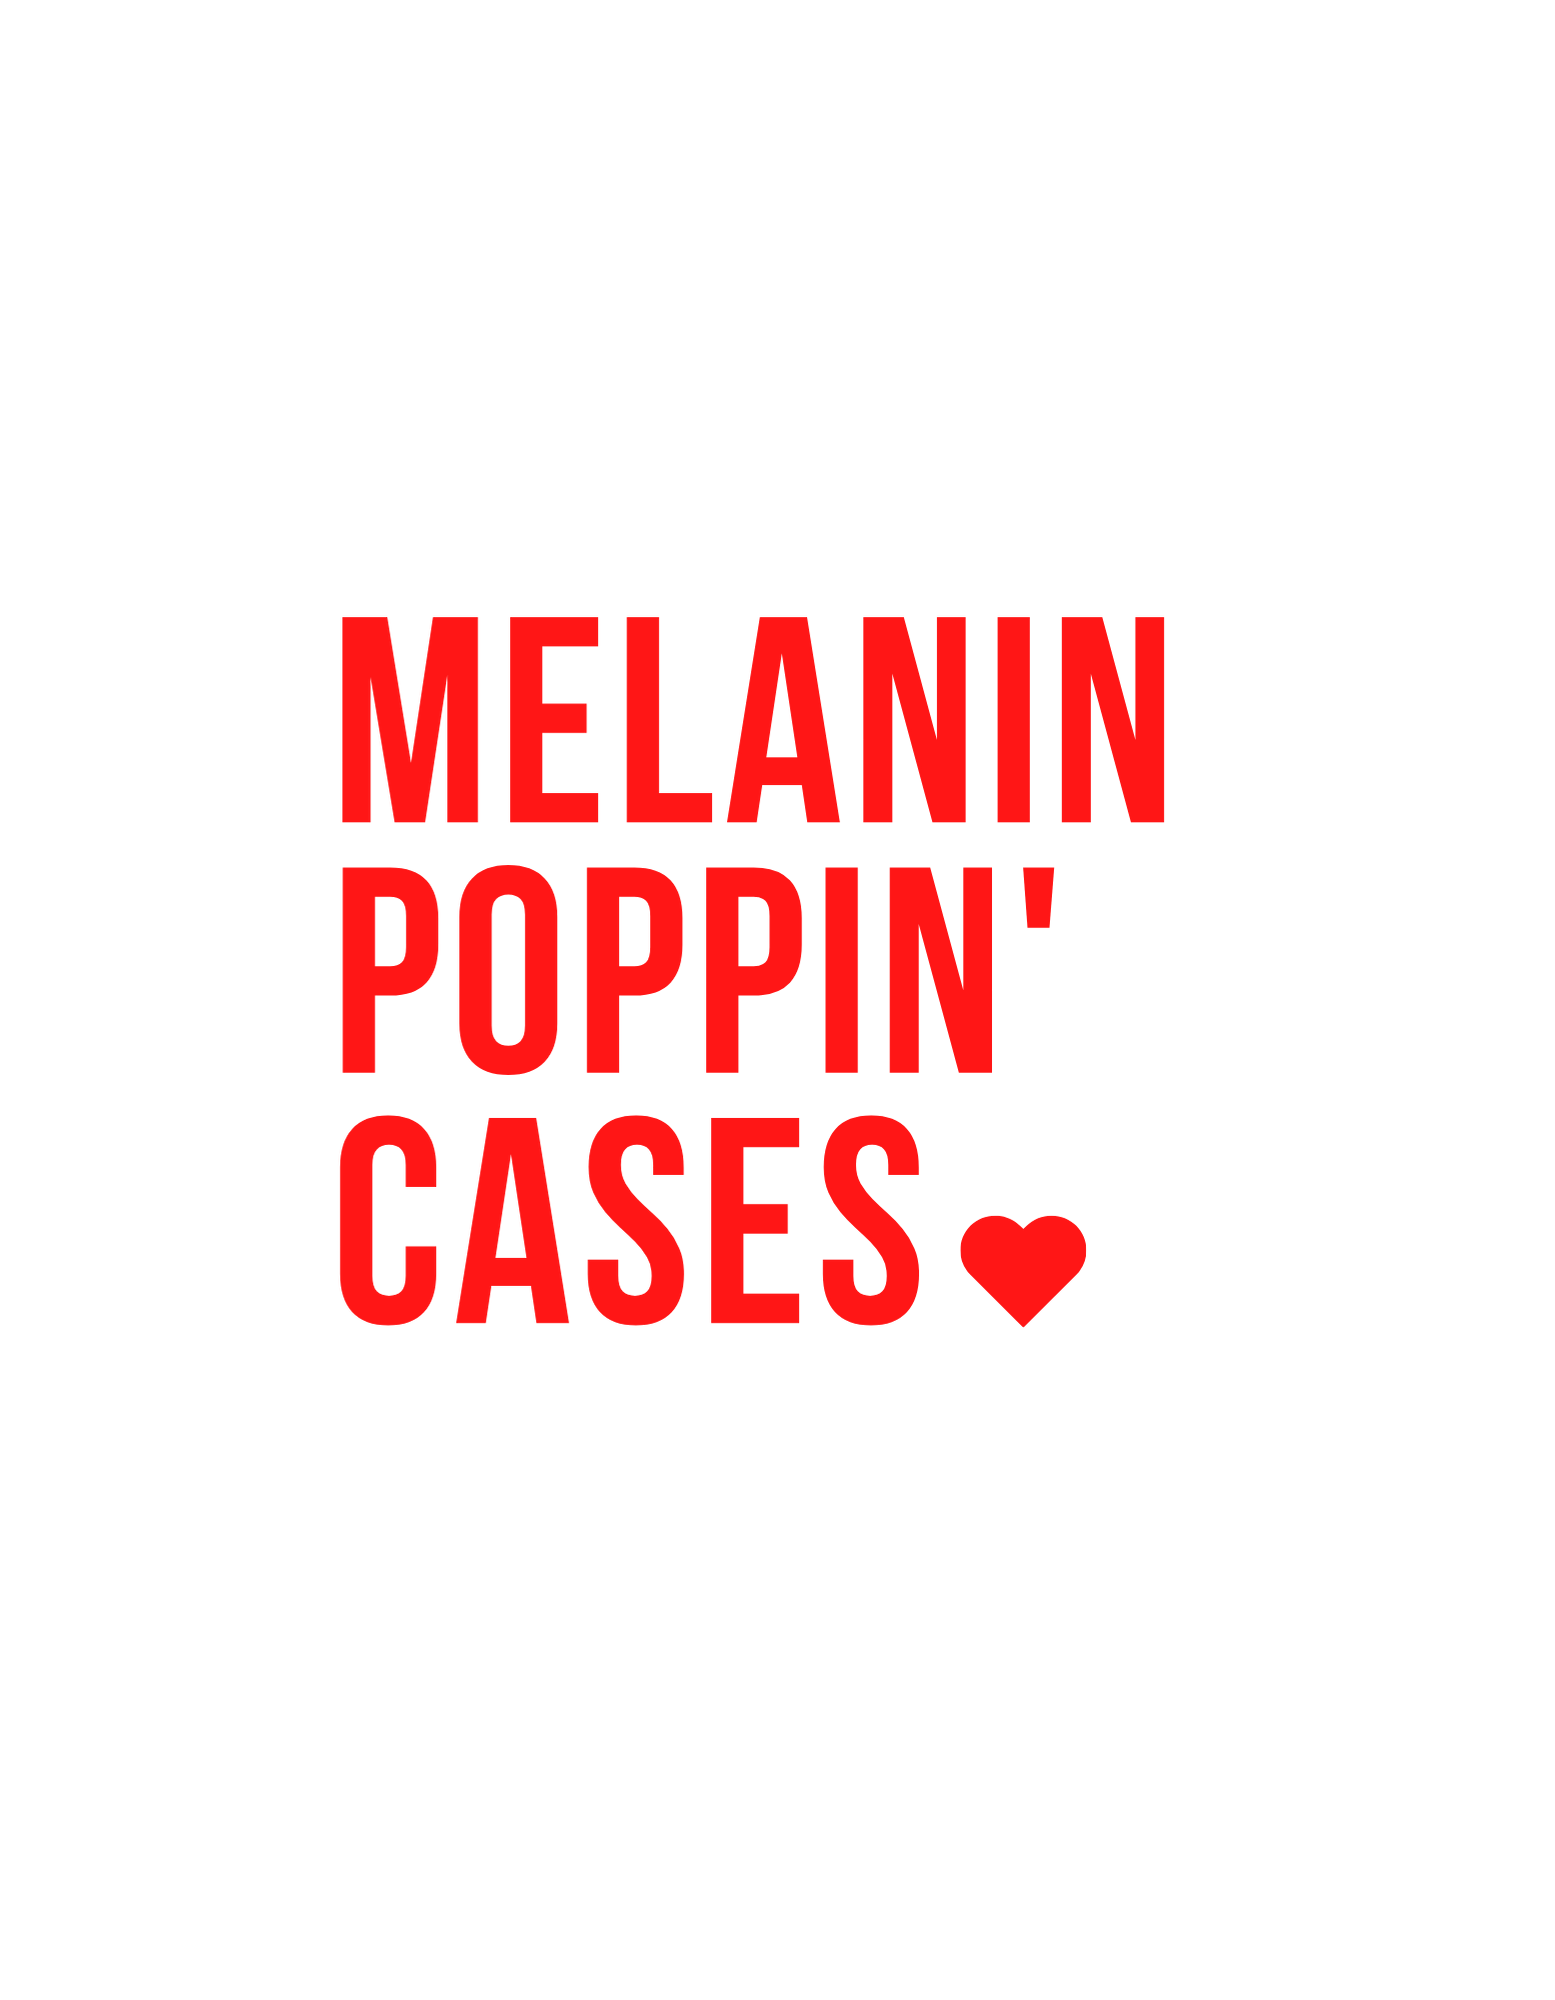 MELANIN POPPIN CASES